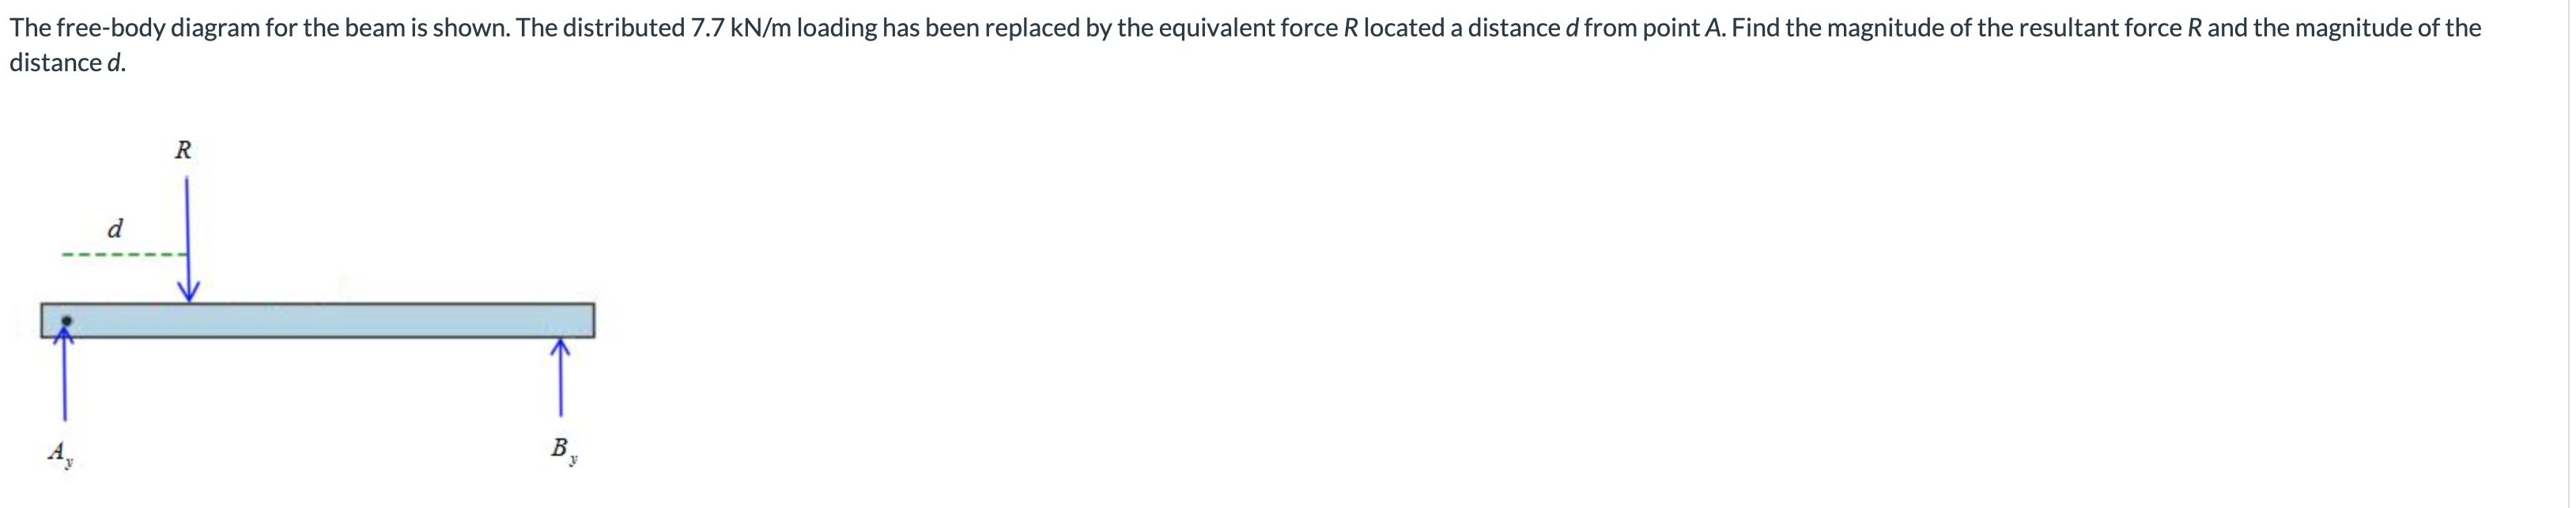 The free-body diagram for the beam is shown. The distributed 7.7 kN/m loading has been replaced by the equivalent force R located a distance d from point A. Find the magnitude of the resultant force R and the magnitude of the distance d R d В,